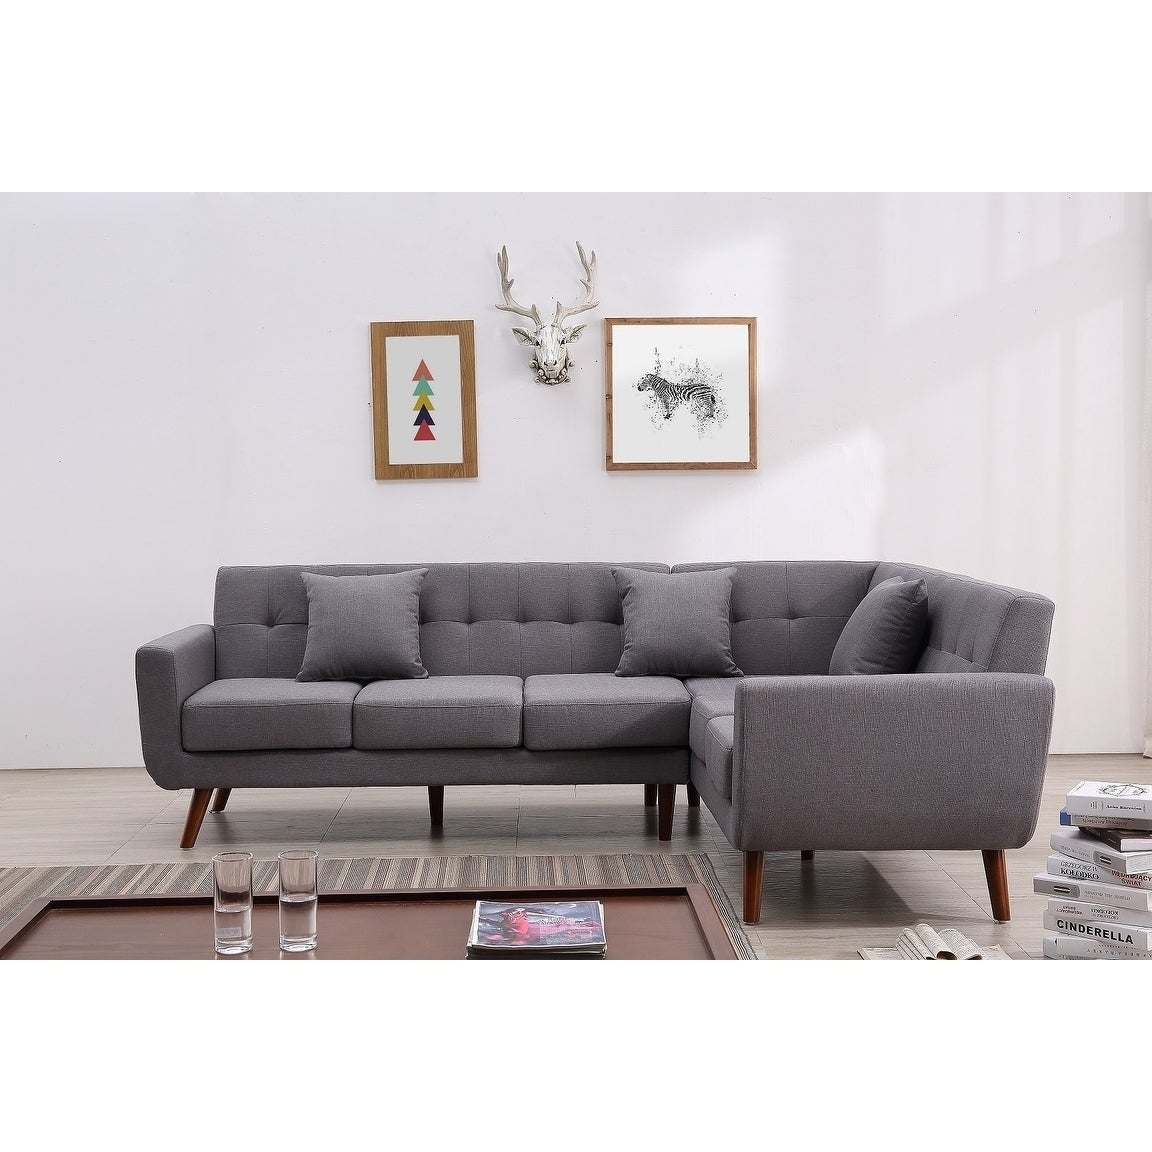 Mid Century Right-Facing Tufted Linen Fabric Upholstered L-Shaped Sectional  Sofa